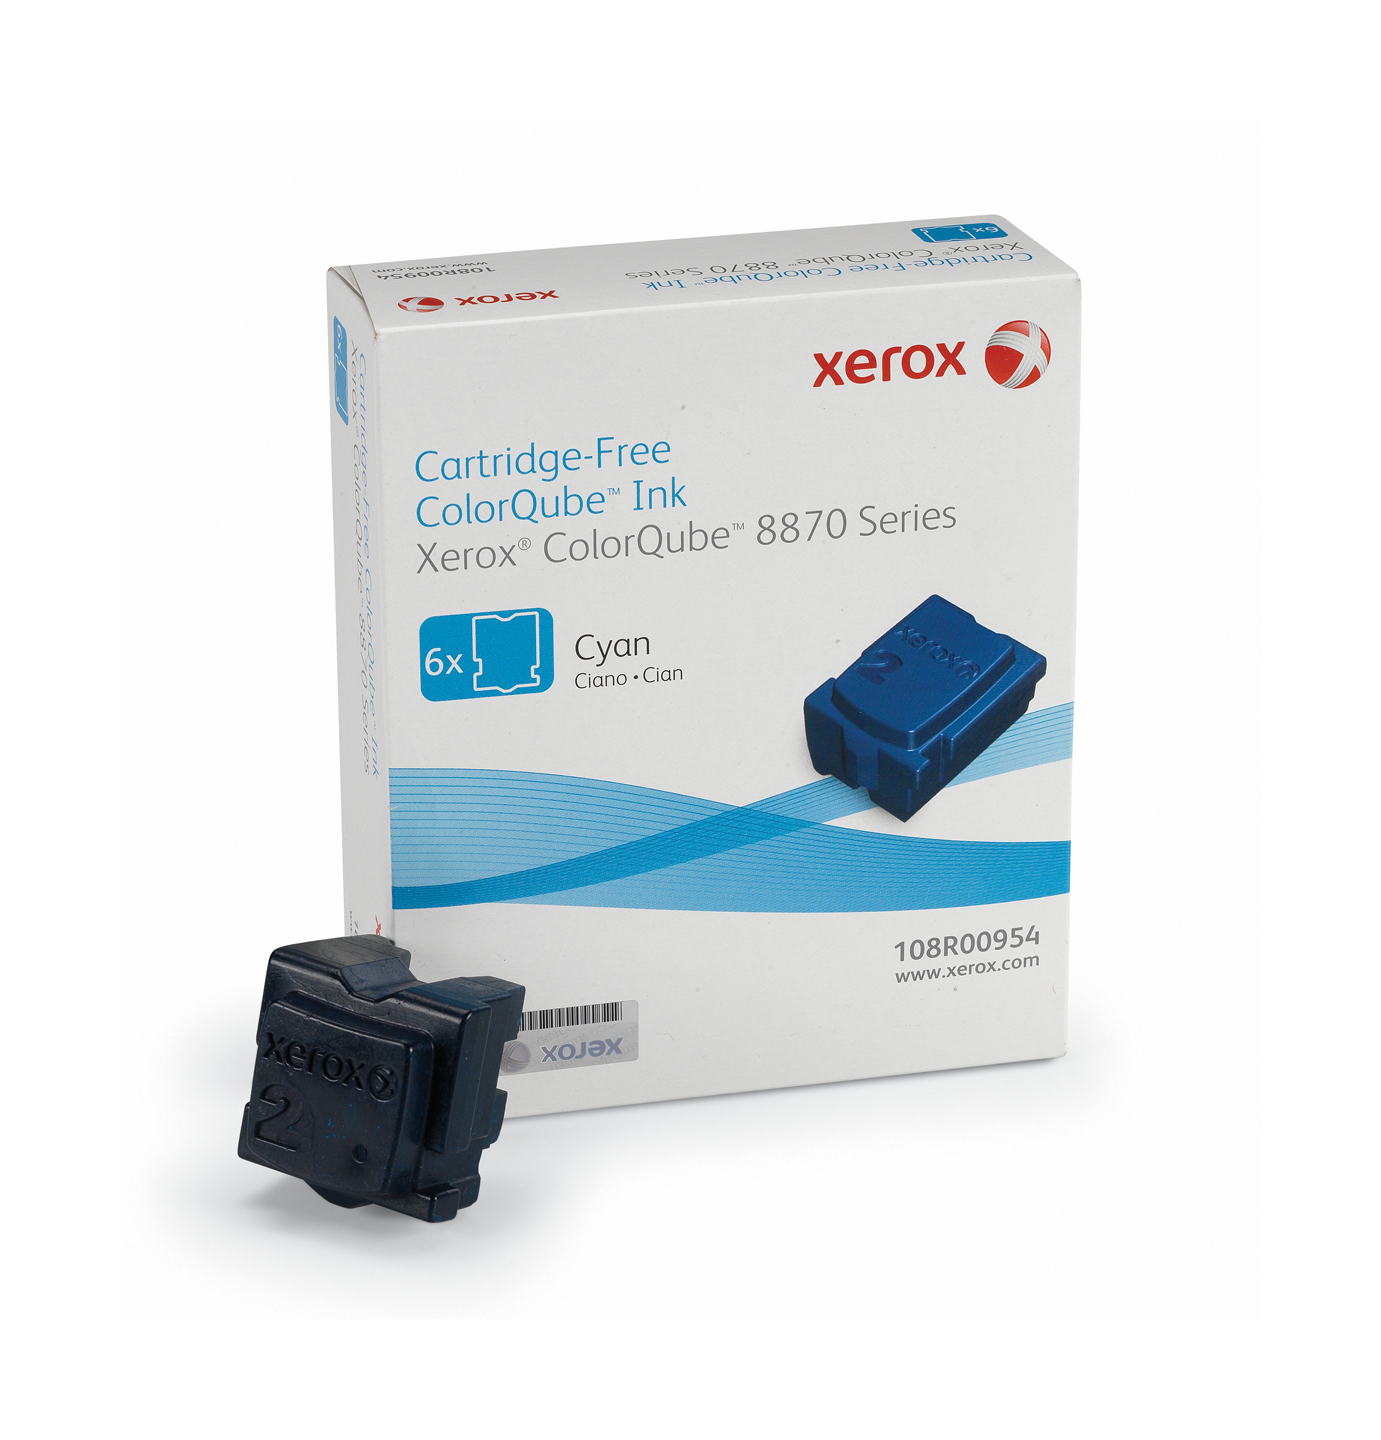 Xerox 108R00954 Dry ink in color-stix, 17.3K pages, Pack qty 6